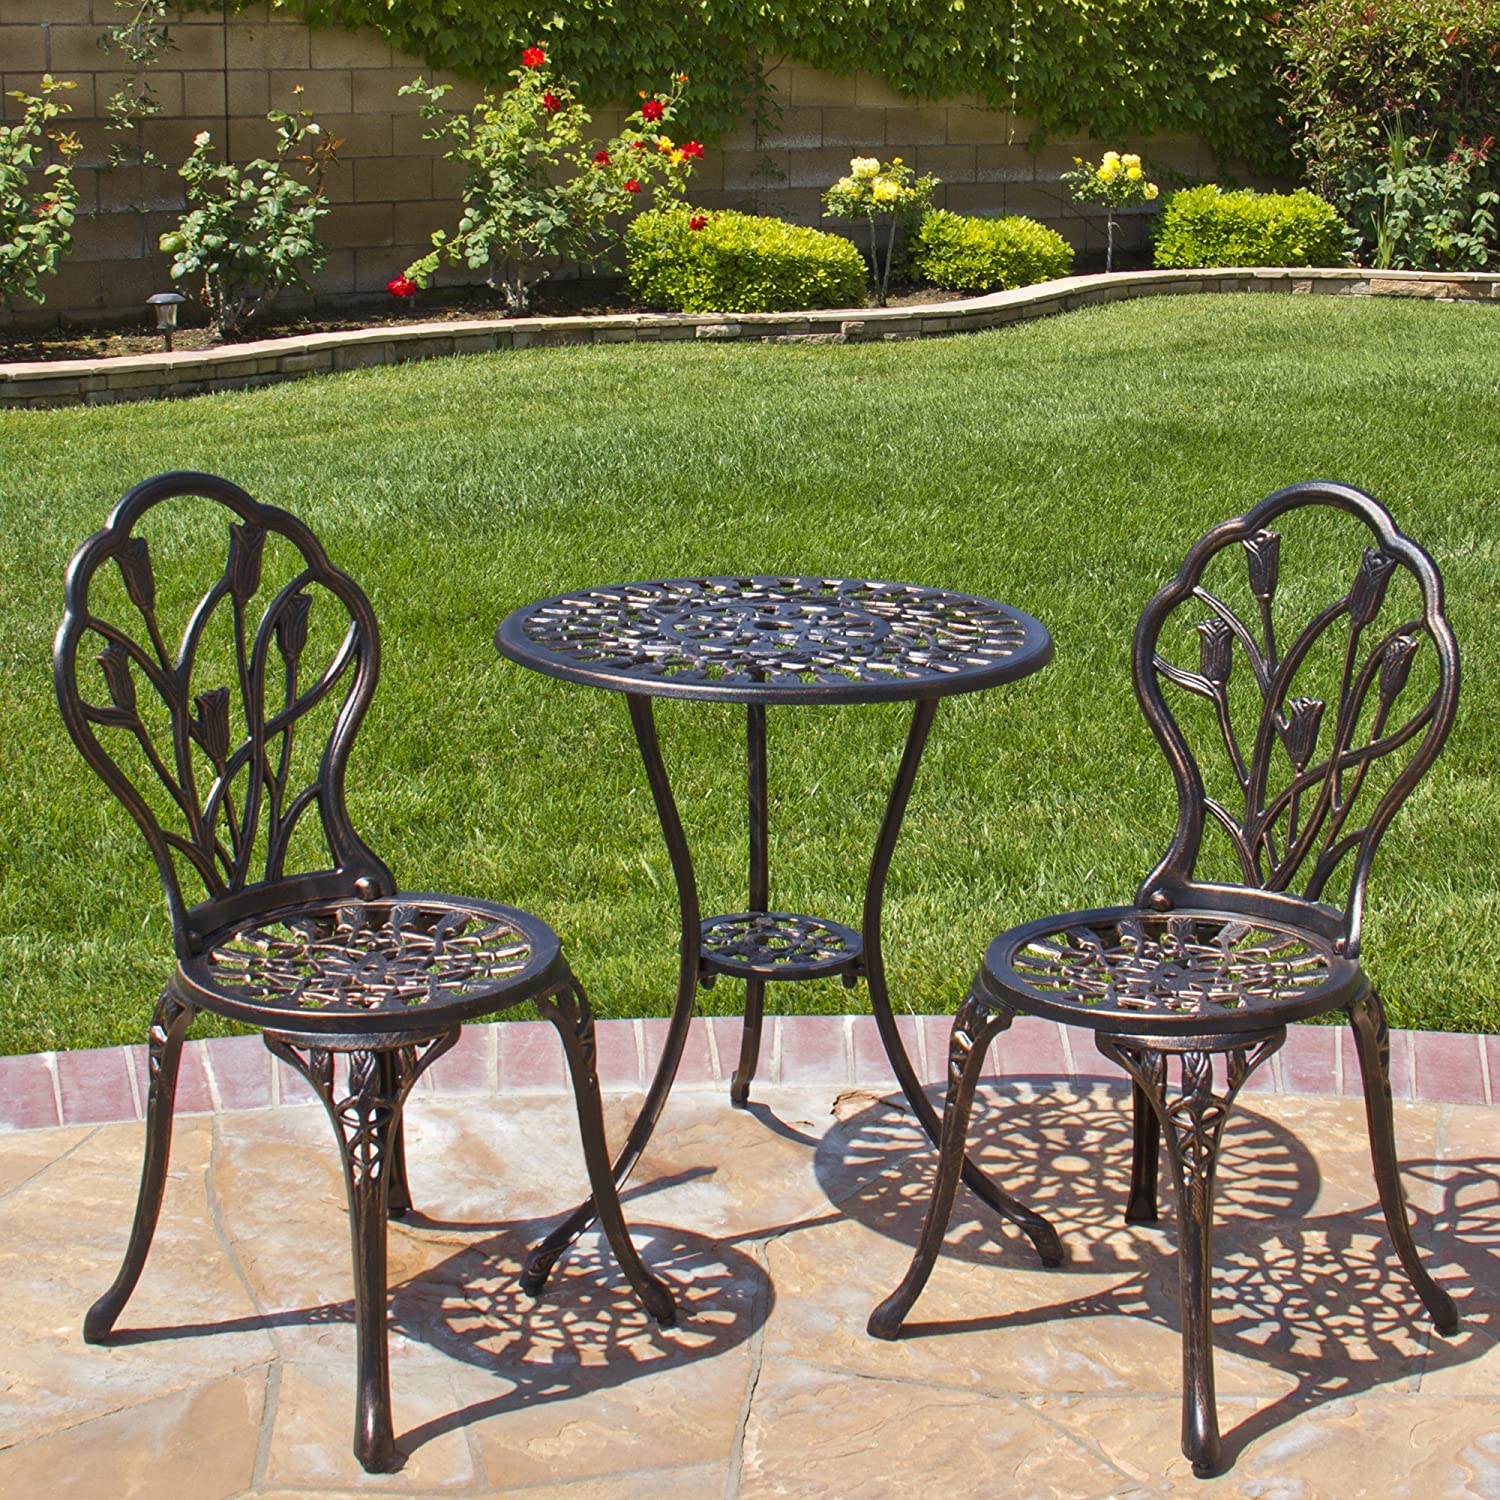 amazoncom best choice products outdoor patio furniture tulip design cast aluminum 3 piece bistro set in antique copper garden outdoor - Garden Furniture 3 Piece